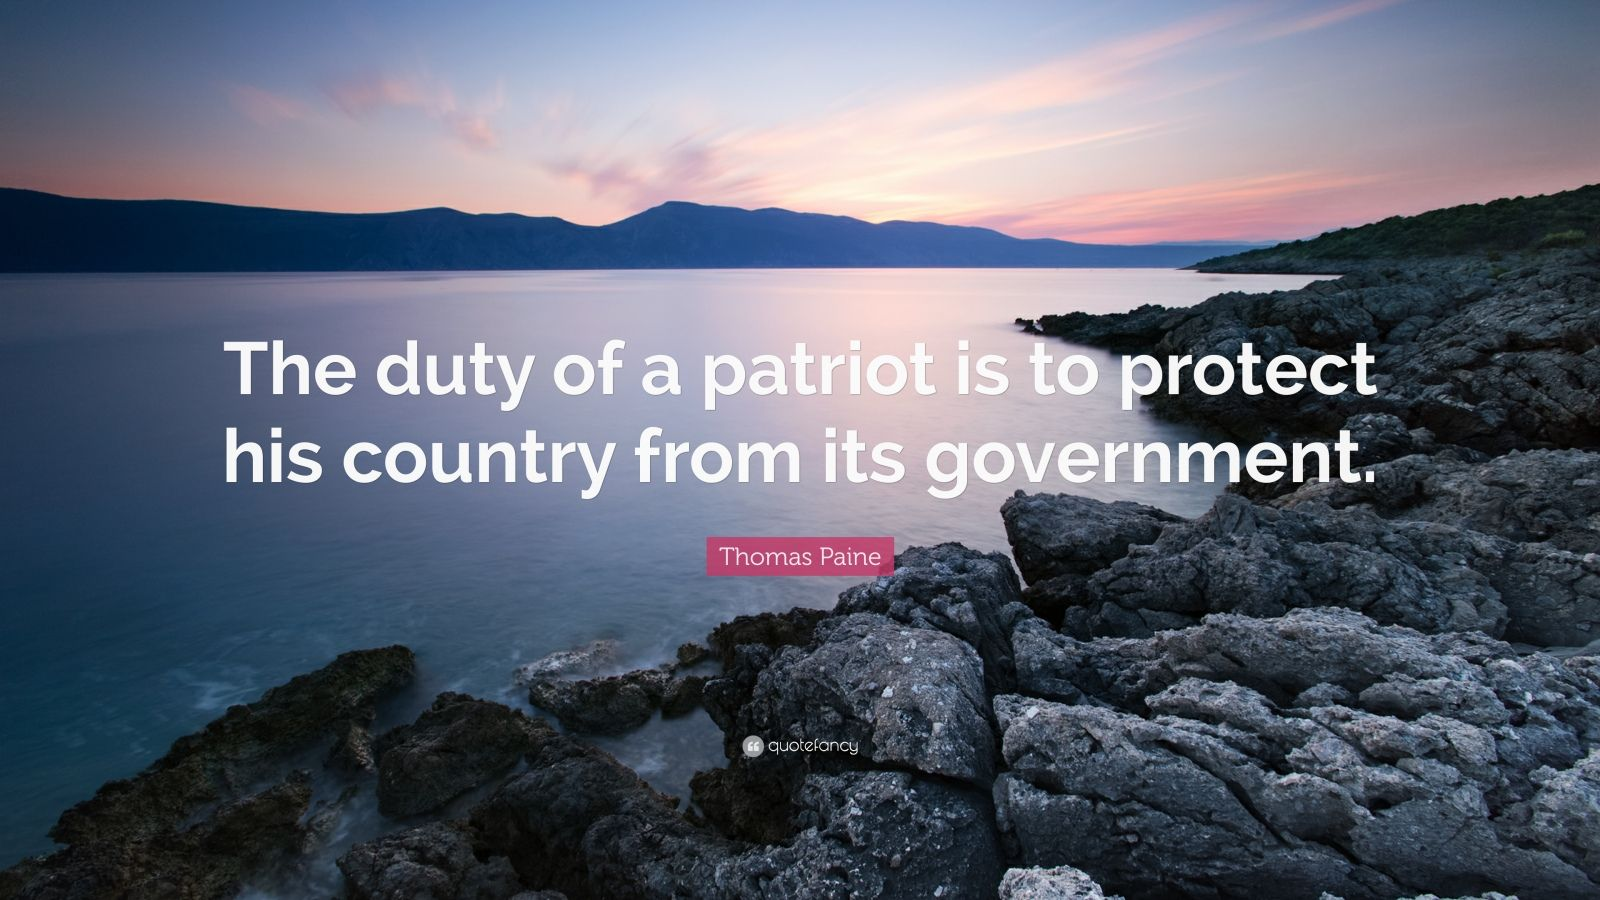 """Thomas Paine Quote: """"The duty of a patriot is to protect his country from its government."""""""